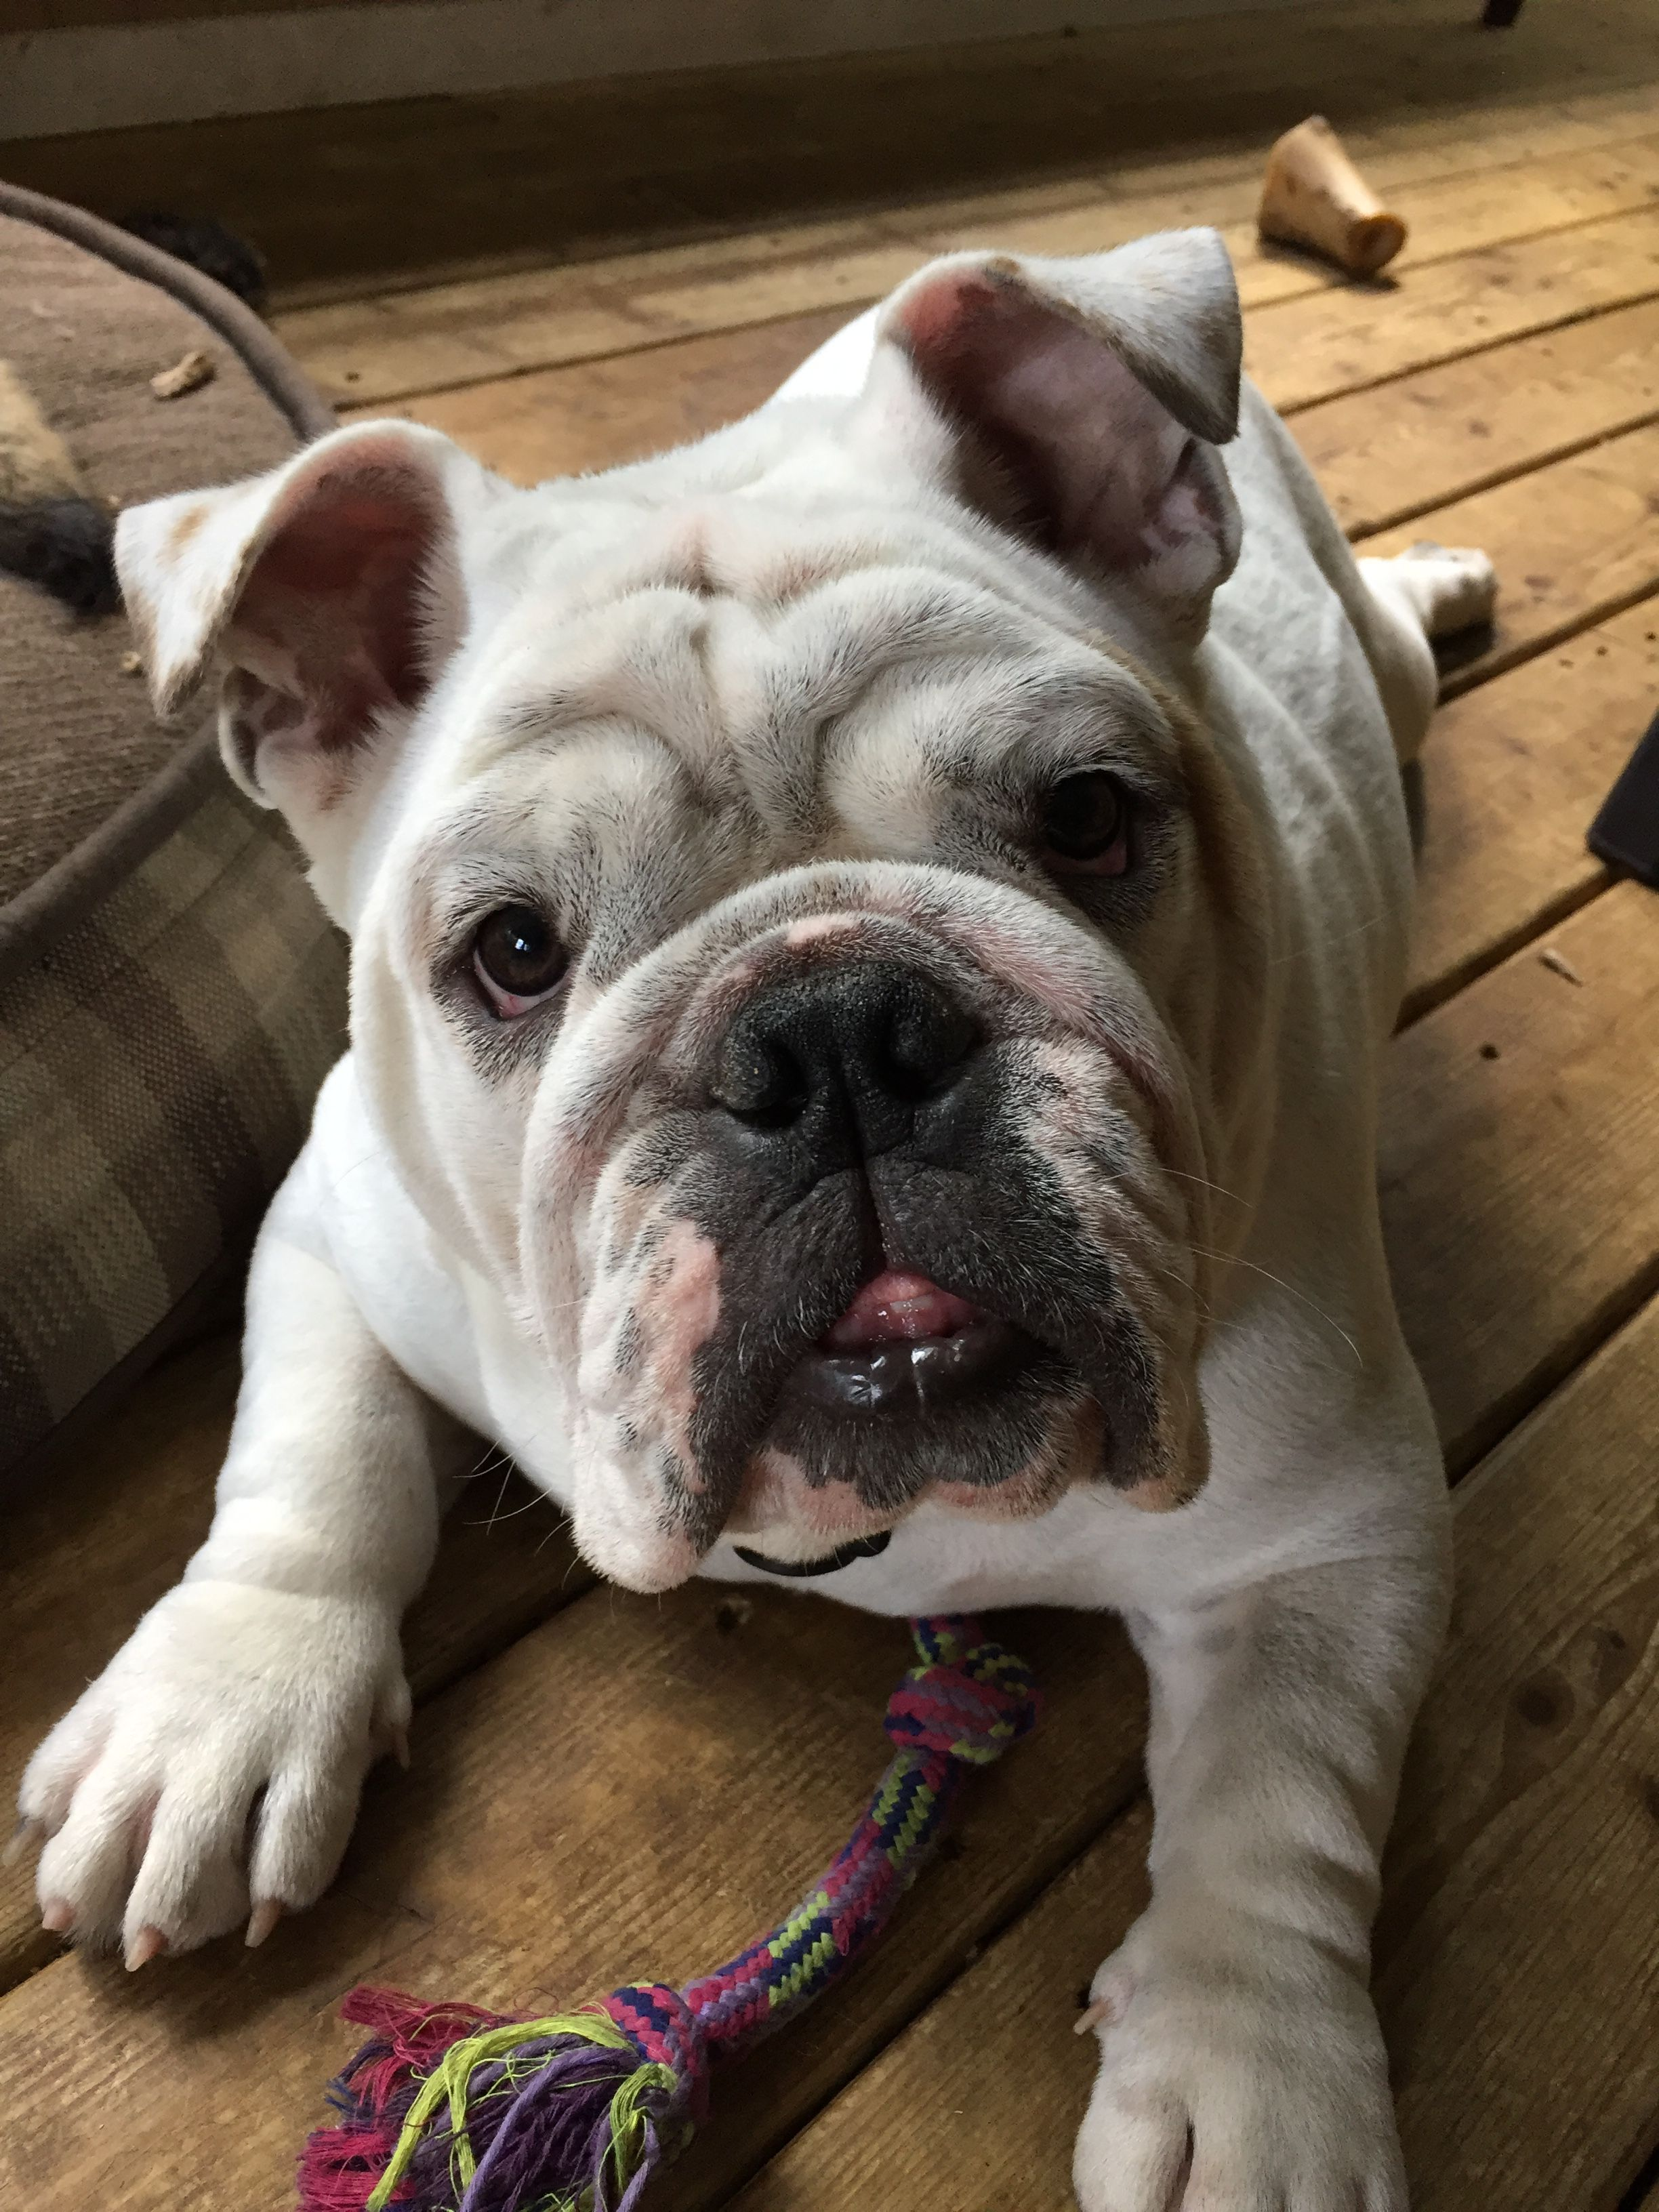 Pinterest Catherinesullivan2017 Cute Puppies Bully Dog Bulldog